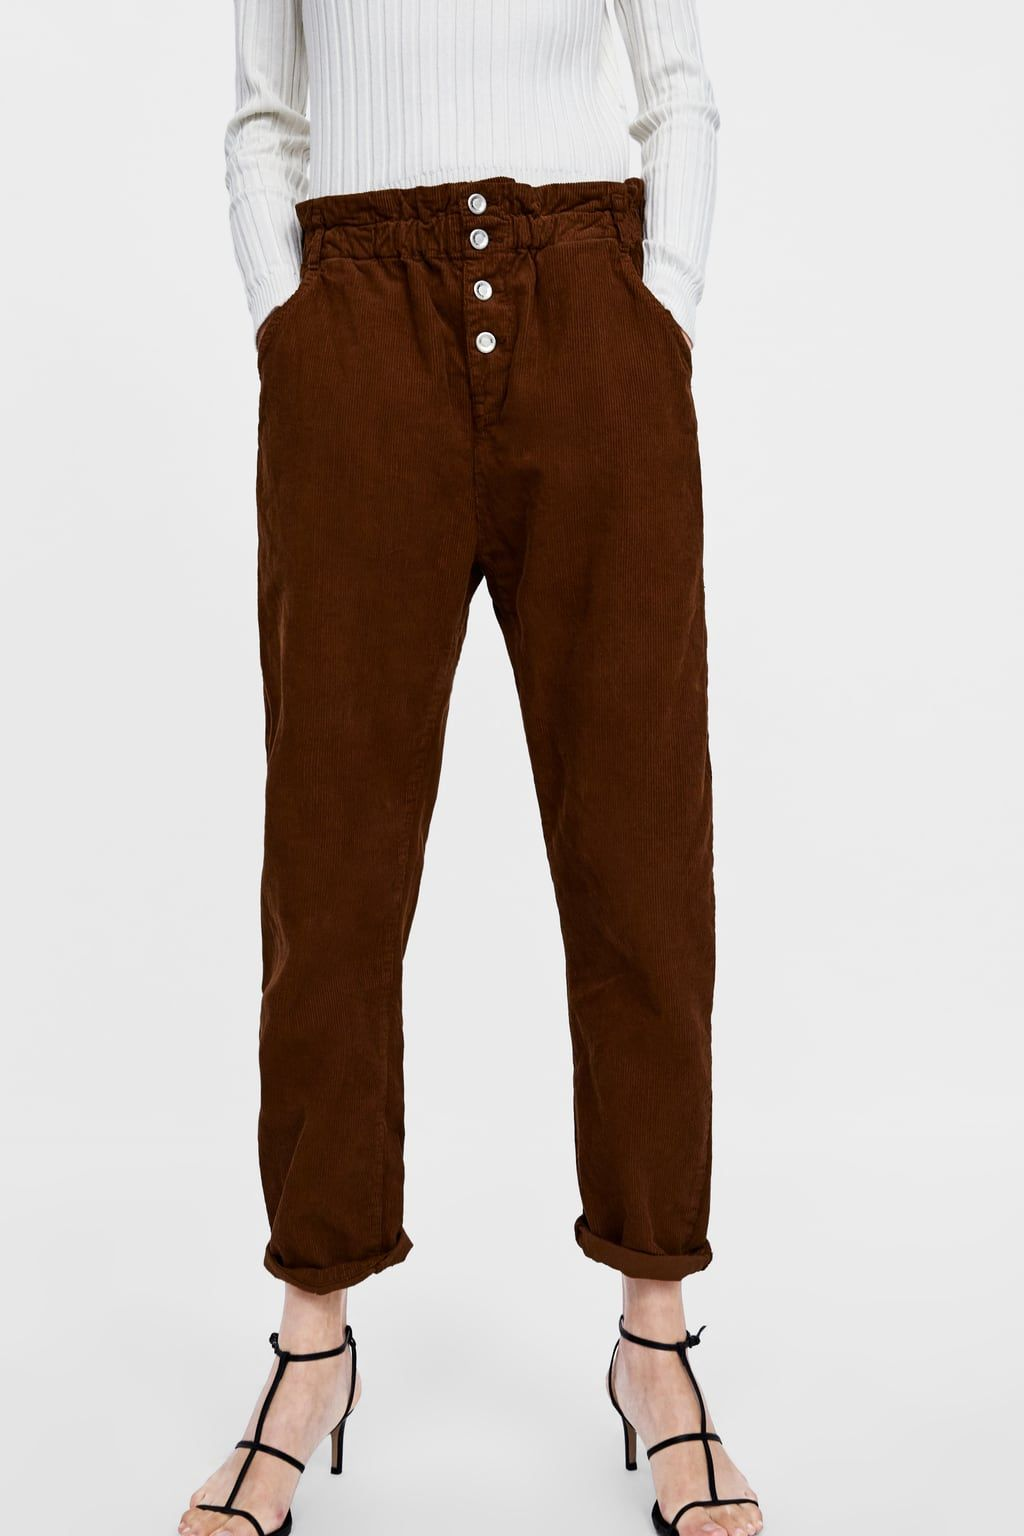 d26aa17be3f3 Image 2 of BAGGY CORDUROY PANTS from Zara | B O T T O M S U P ...